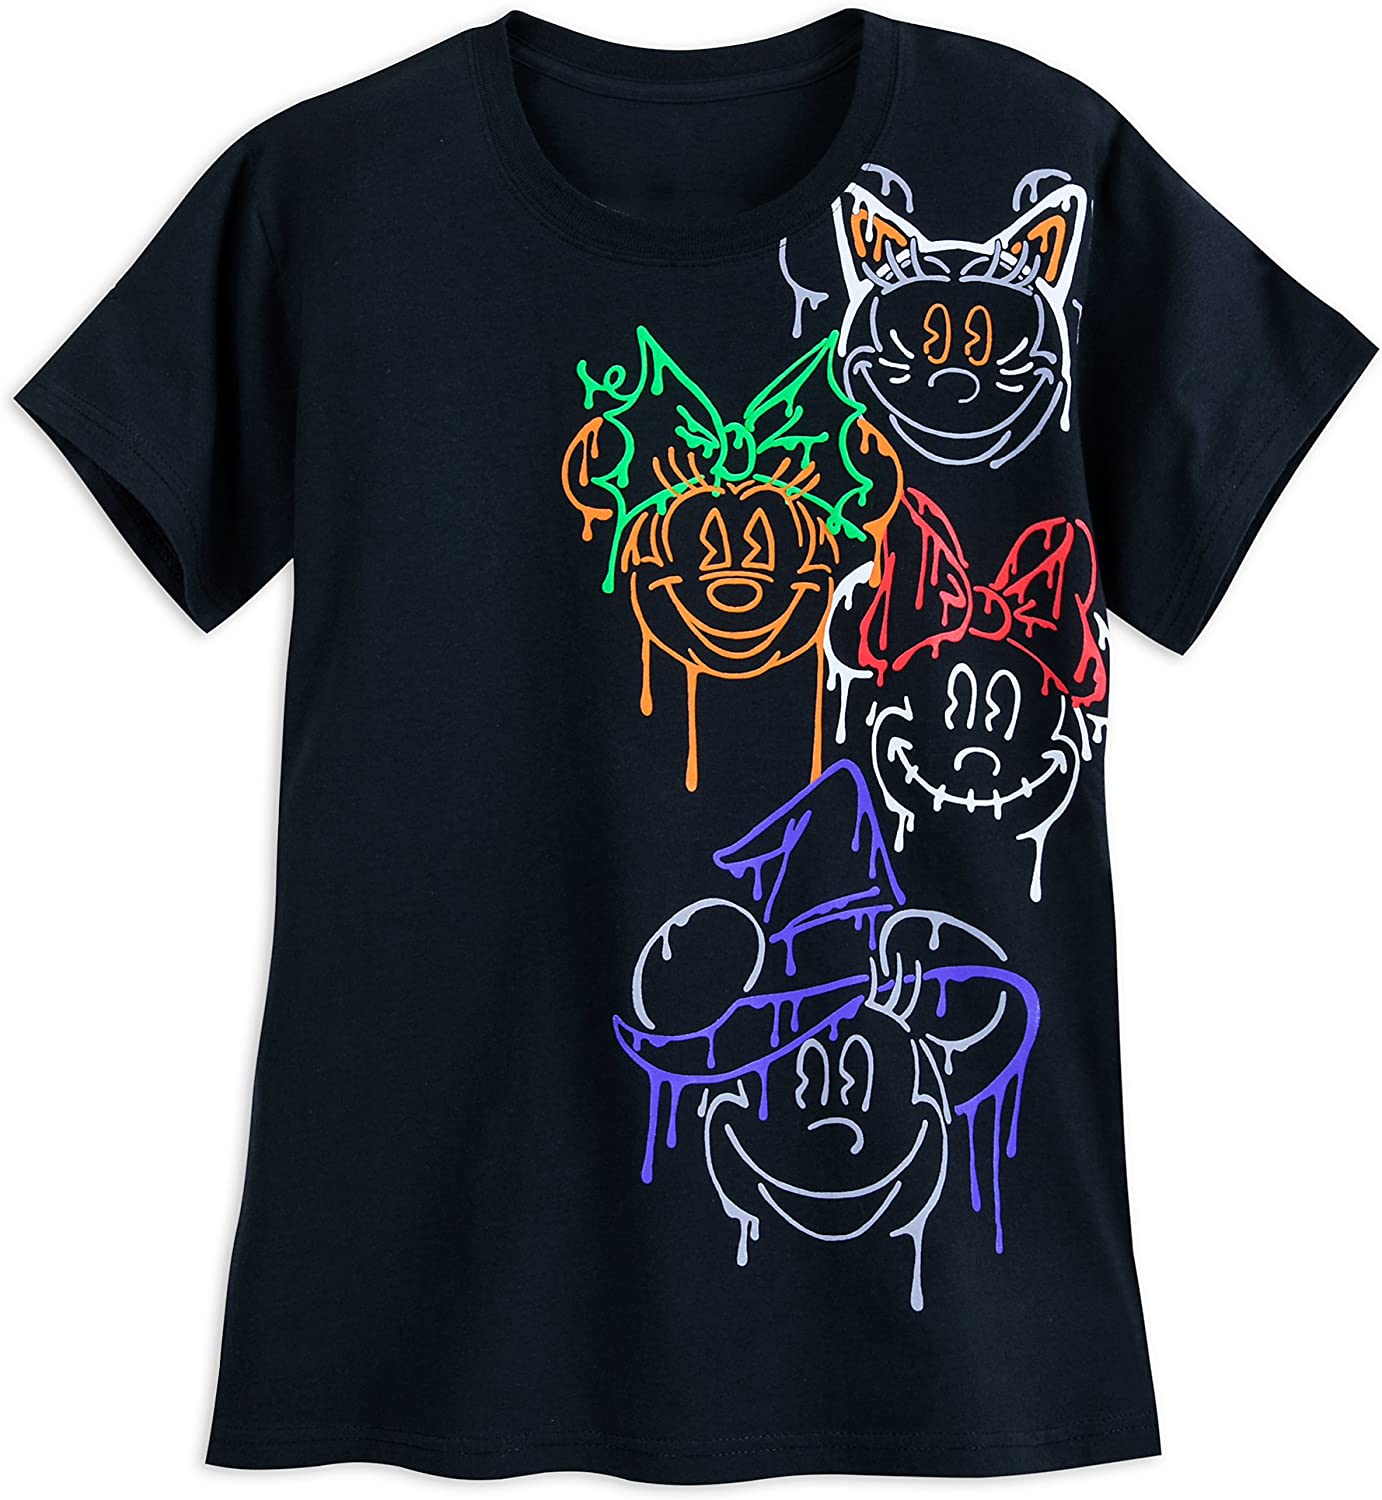 Disney Minnie Mouse 5 Japan's largest assortment ☆ very popular Halloween Black T-Shirt for Adults